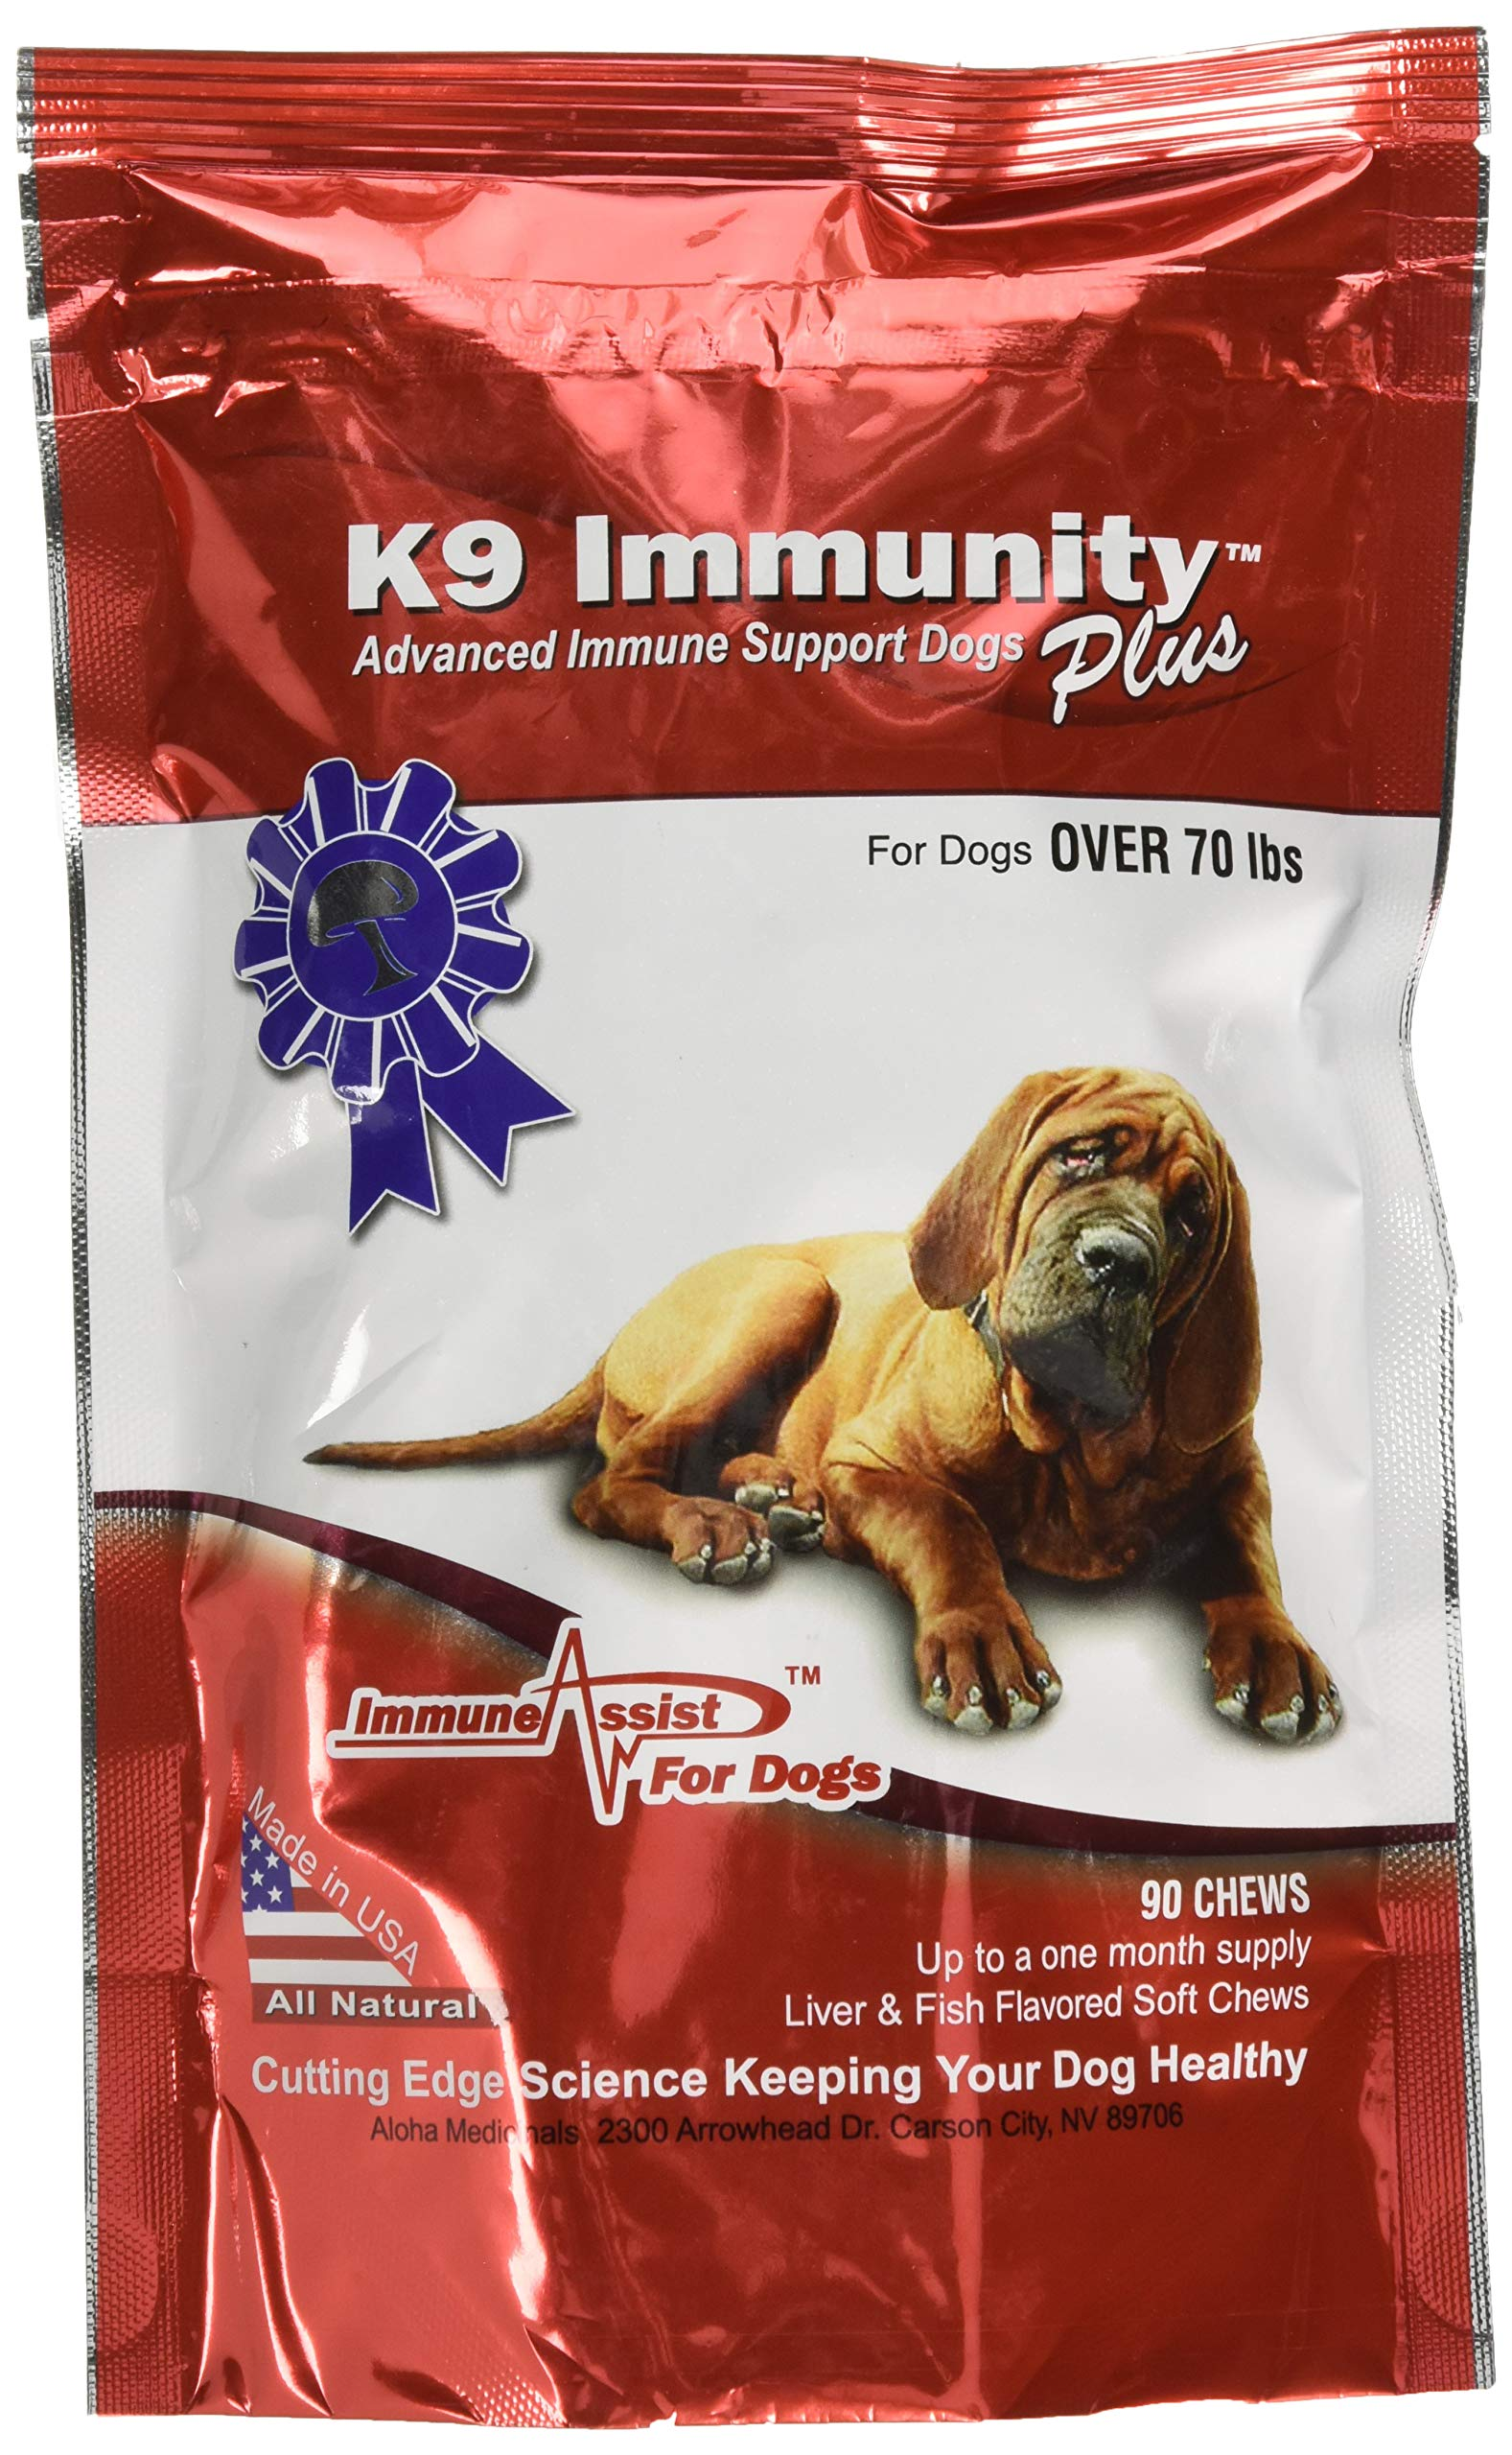 Aloha Medicinals - K9 Immunity Plus - Potent Immune Booster for Dogs Over 70 Pounds - 90 Soft Chews by Aloha Medicinals